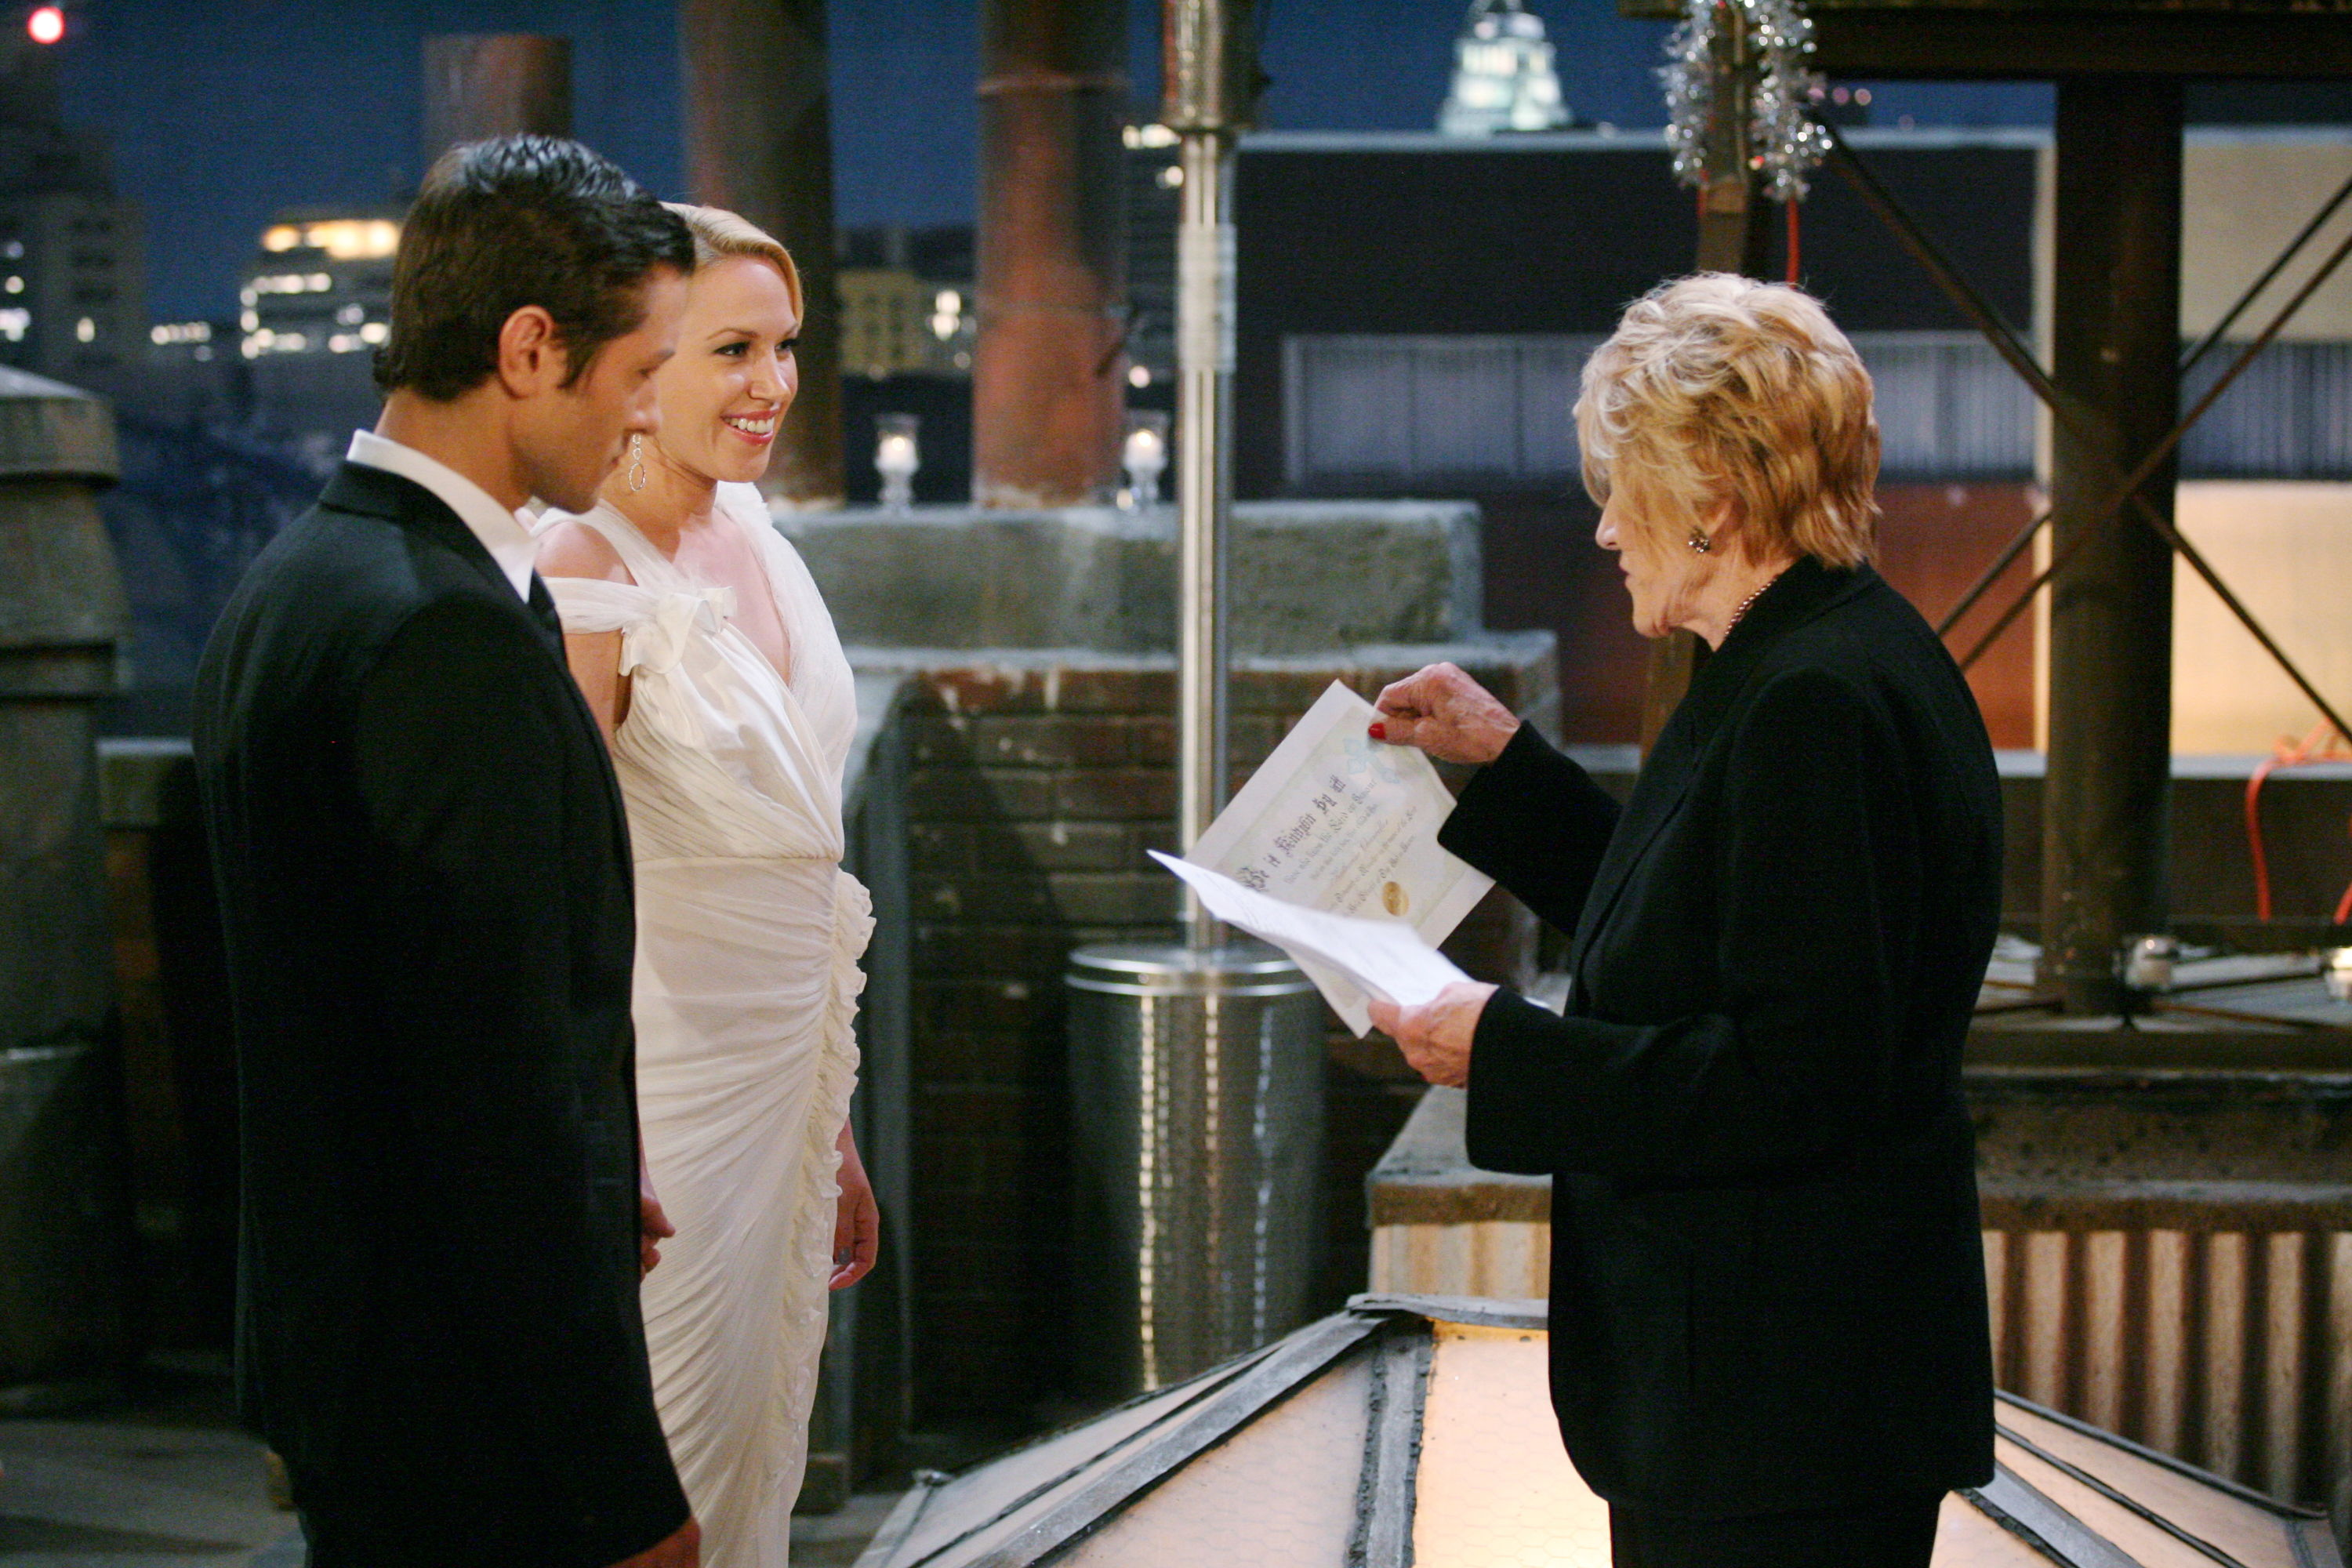 Katherine Chancellor officiated Daniel Romalotti and Amber Moore's marriage.